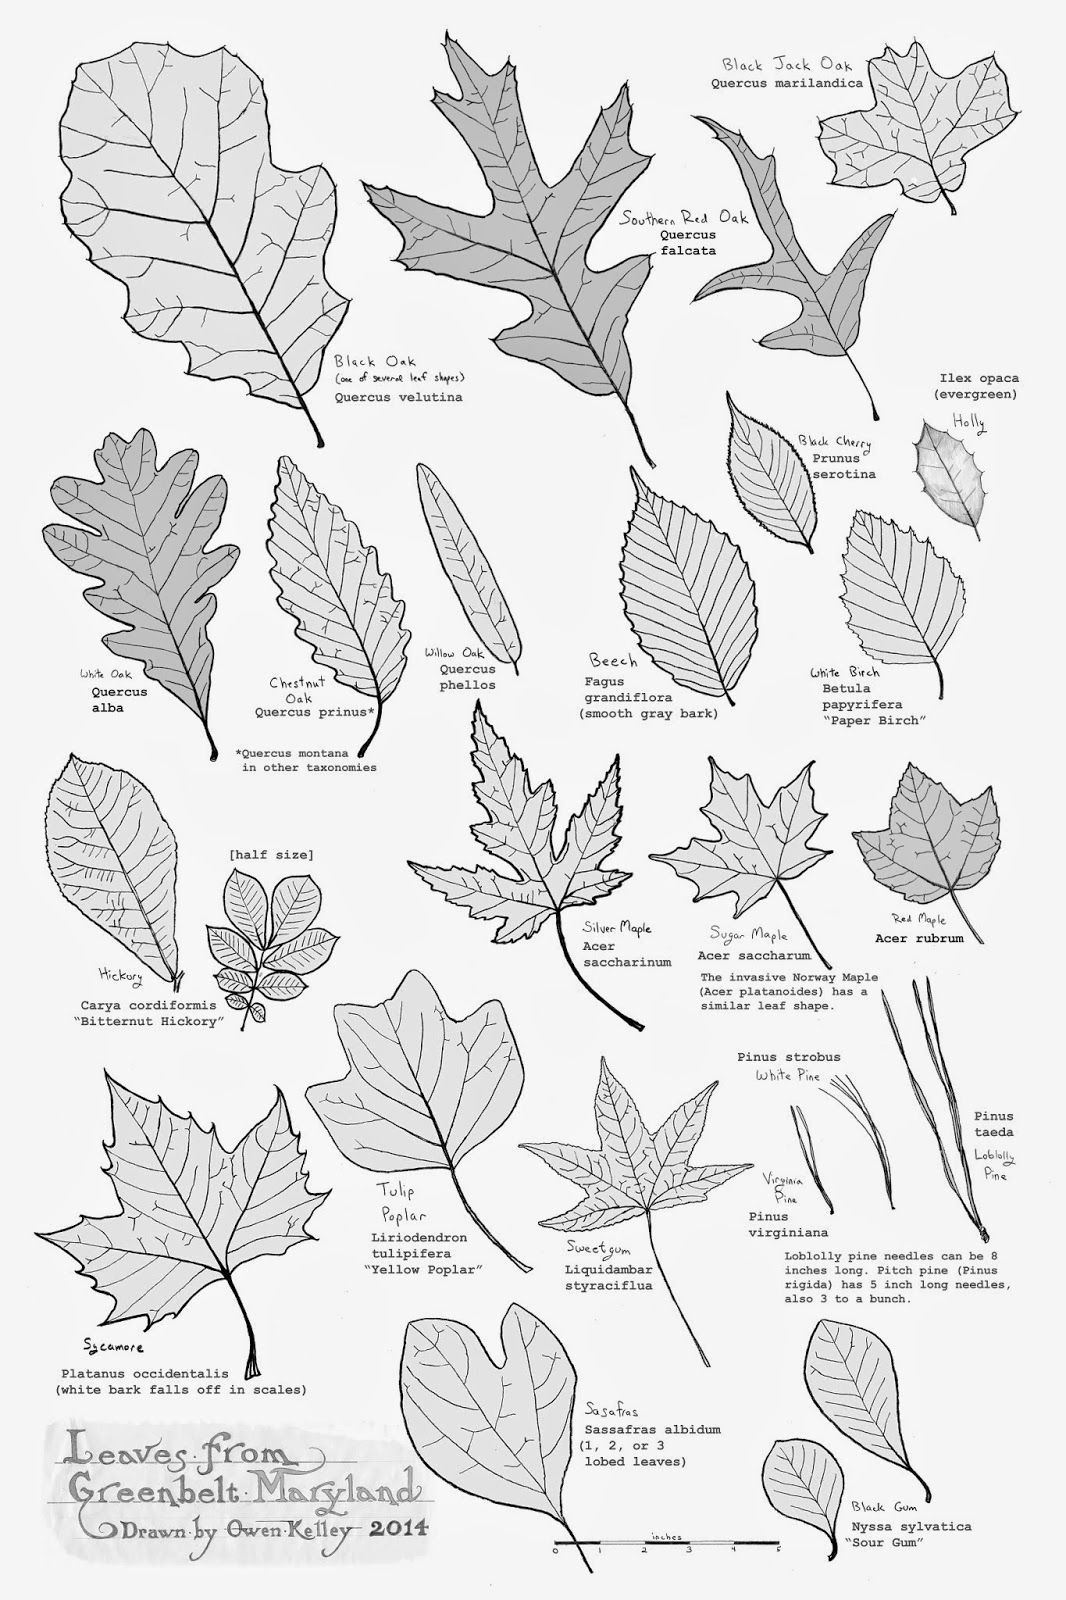 Leaves Of Greenbelt Poster Updated With Images